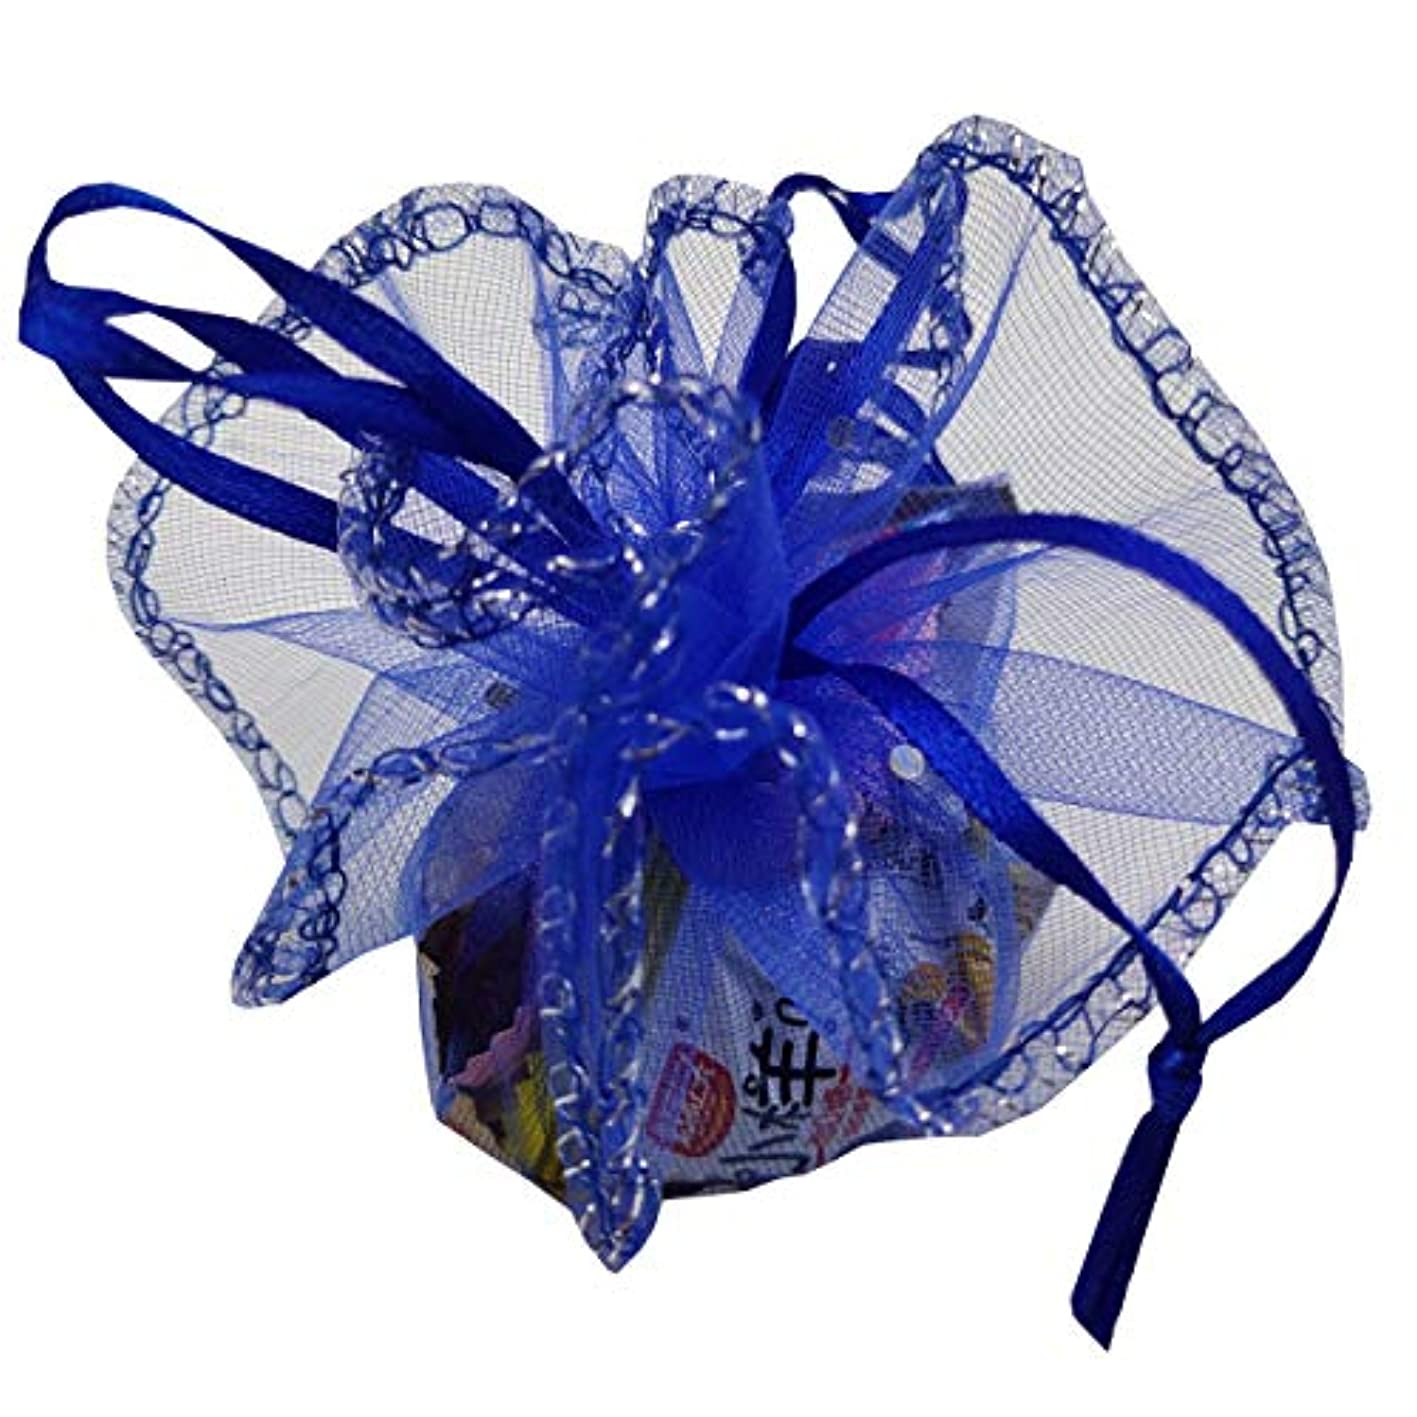 Ankirol 100pcs Sheer Organza Favor Bags Round Drawstring Organza Jewelry Candy Pouch 26cm/10.2 inch Diameter Christmas Wedding Party Favor Gift Packaging Bags (Royal Blue) ovesemlkjyi387